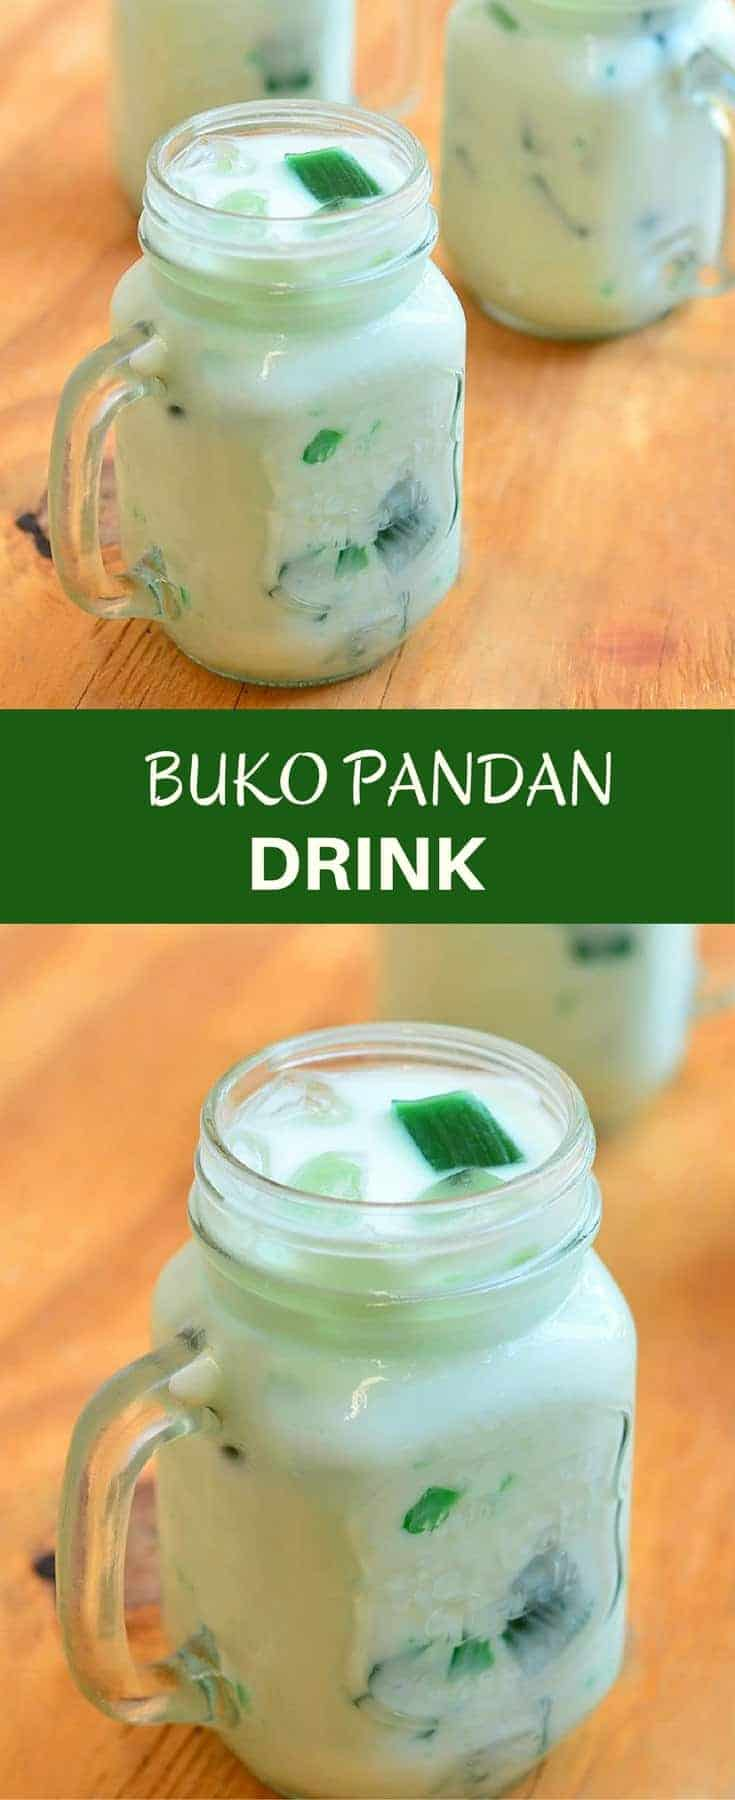 Buko Pandan Drink with pandan gelatin and shredded young coconut in a creamy coconut juice. Refreshing and delicious, this tropical drink is sure to be a crowd pleaser!